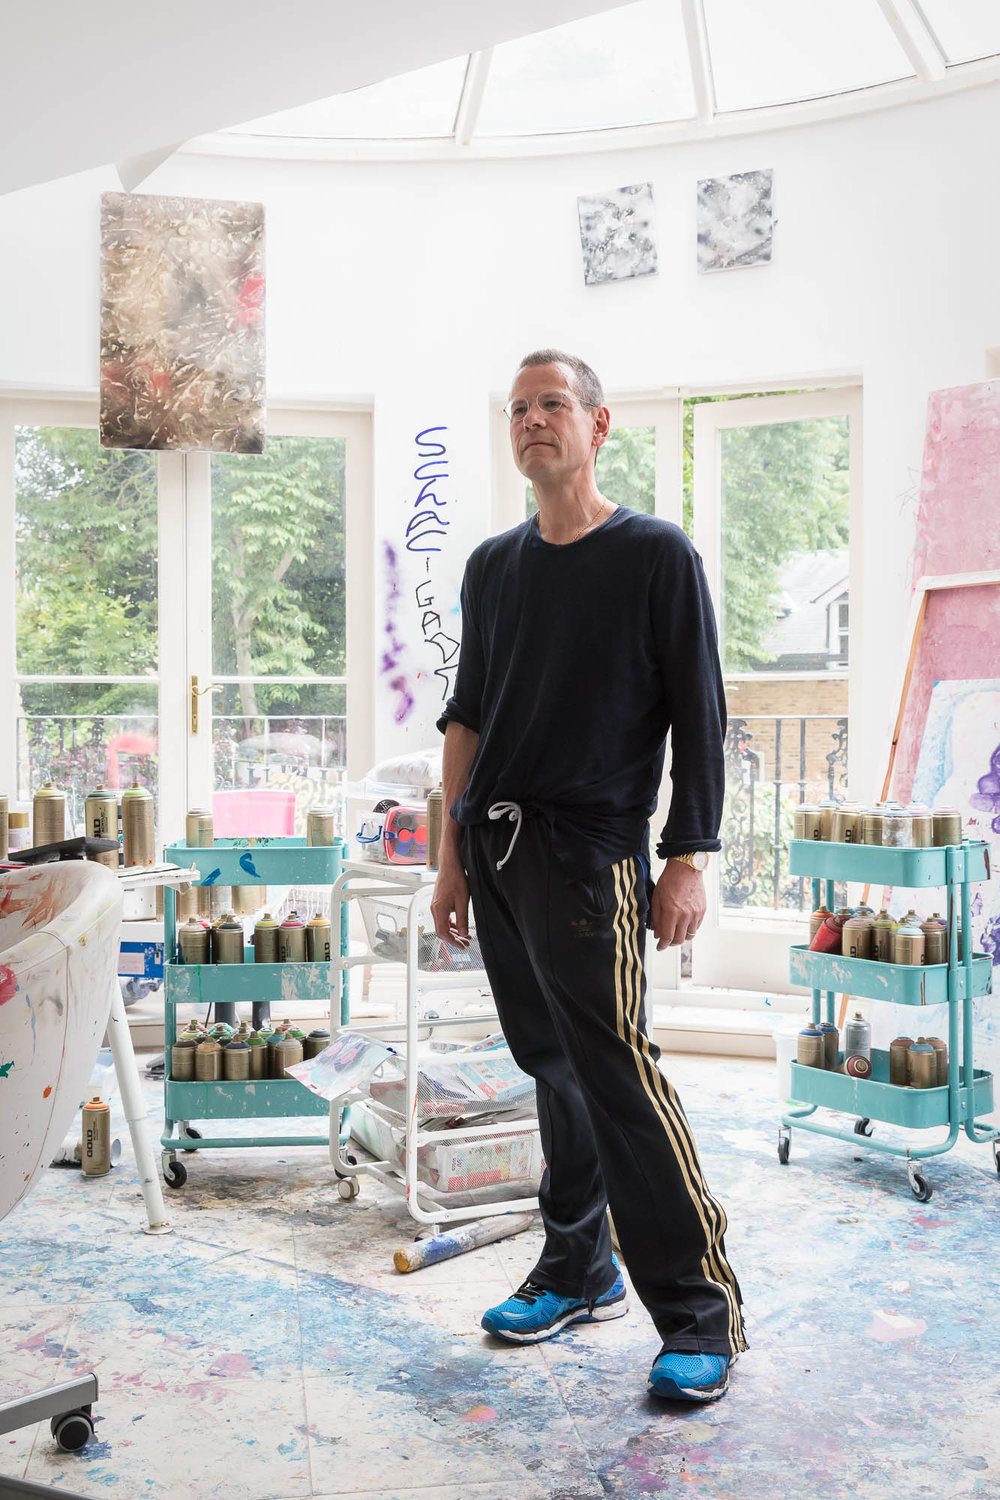 Kenny Schachter at home in London